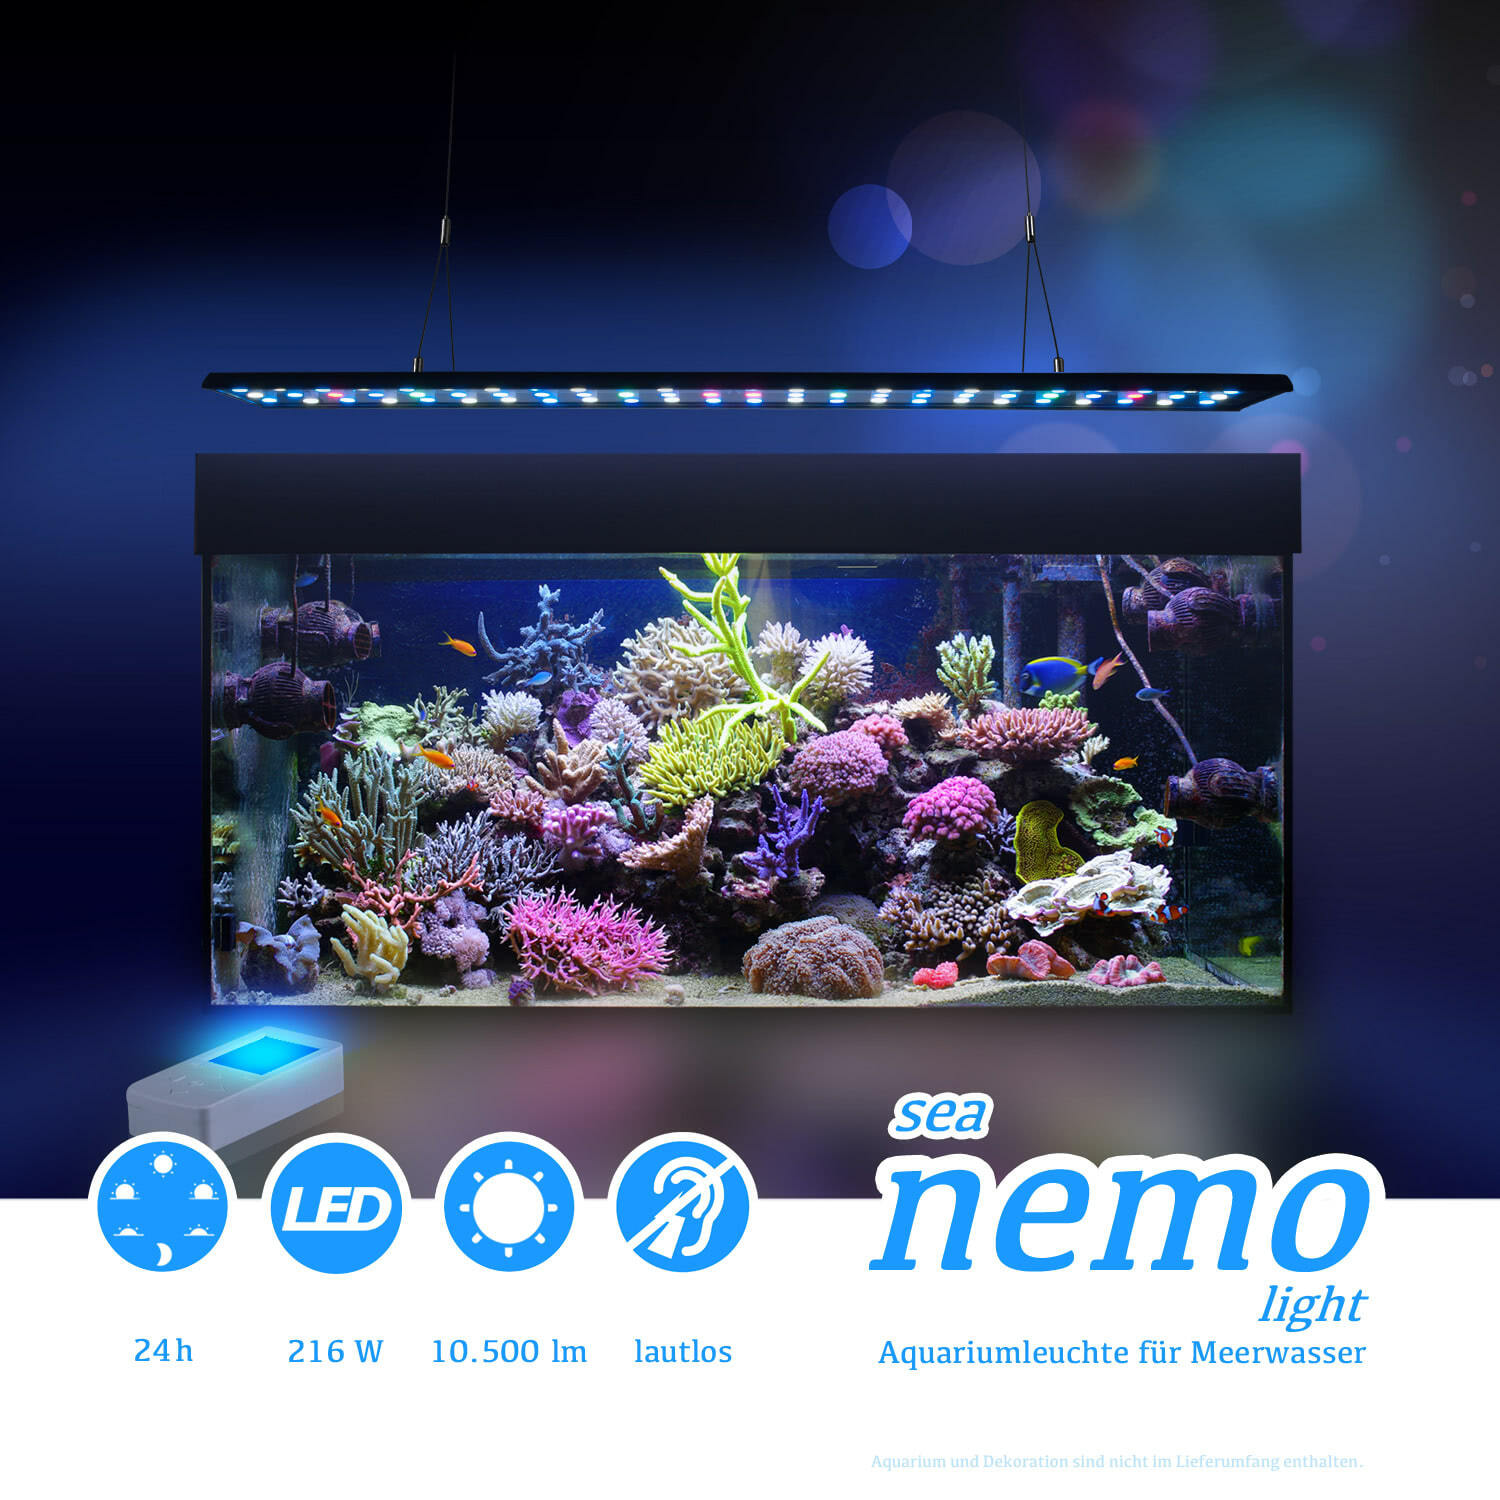 esmart germany sea nemo 4 led meerwasser korallen aquarium beleuchtung lampe ebay. Black Bedroom Furniture Sets. Home Design Ideas